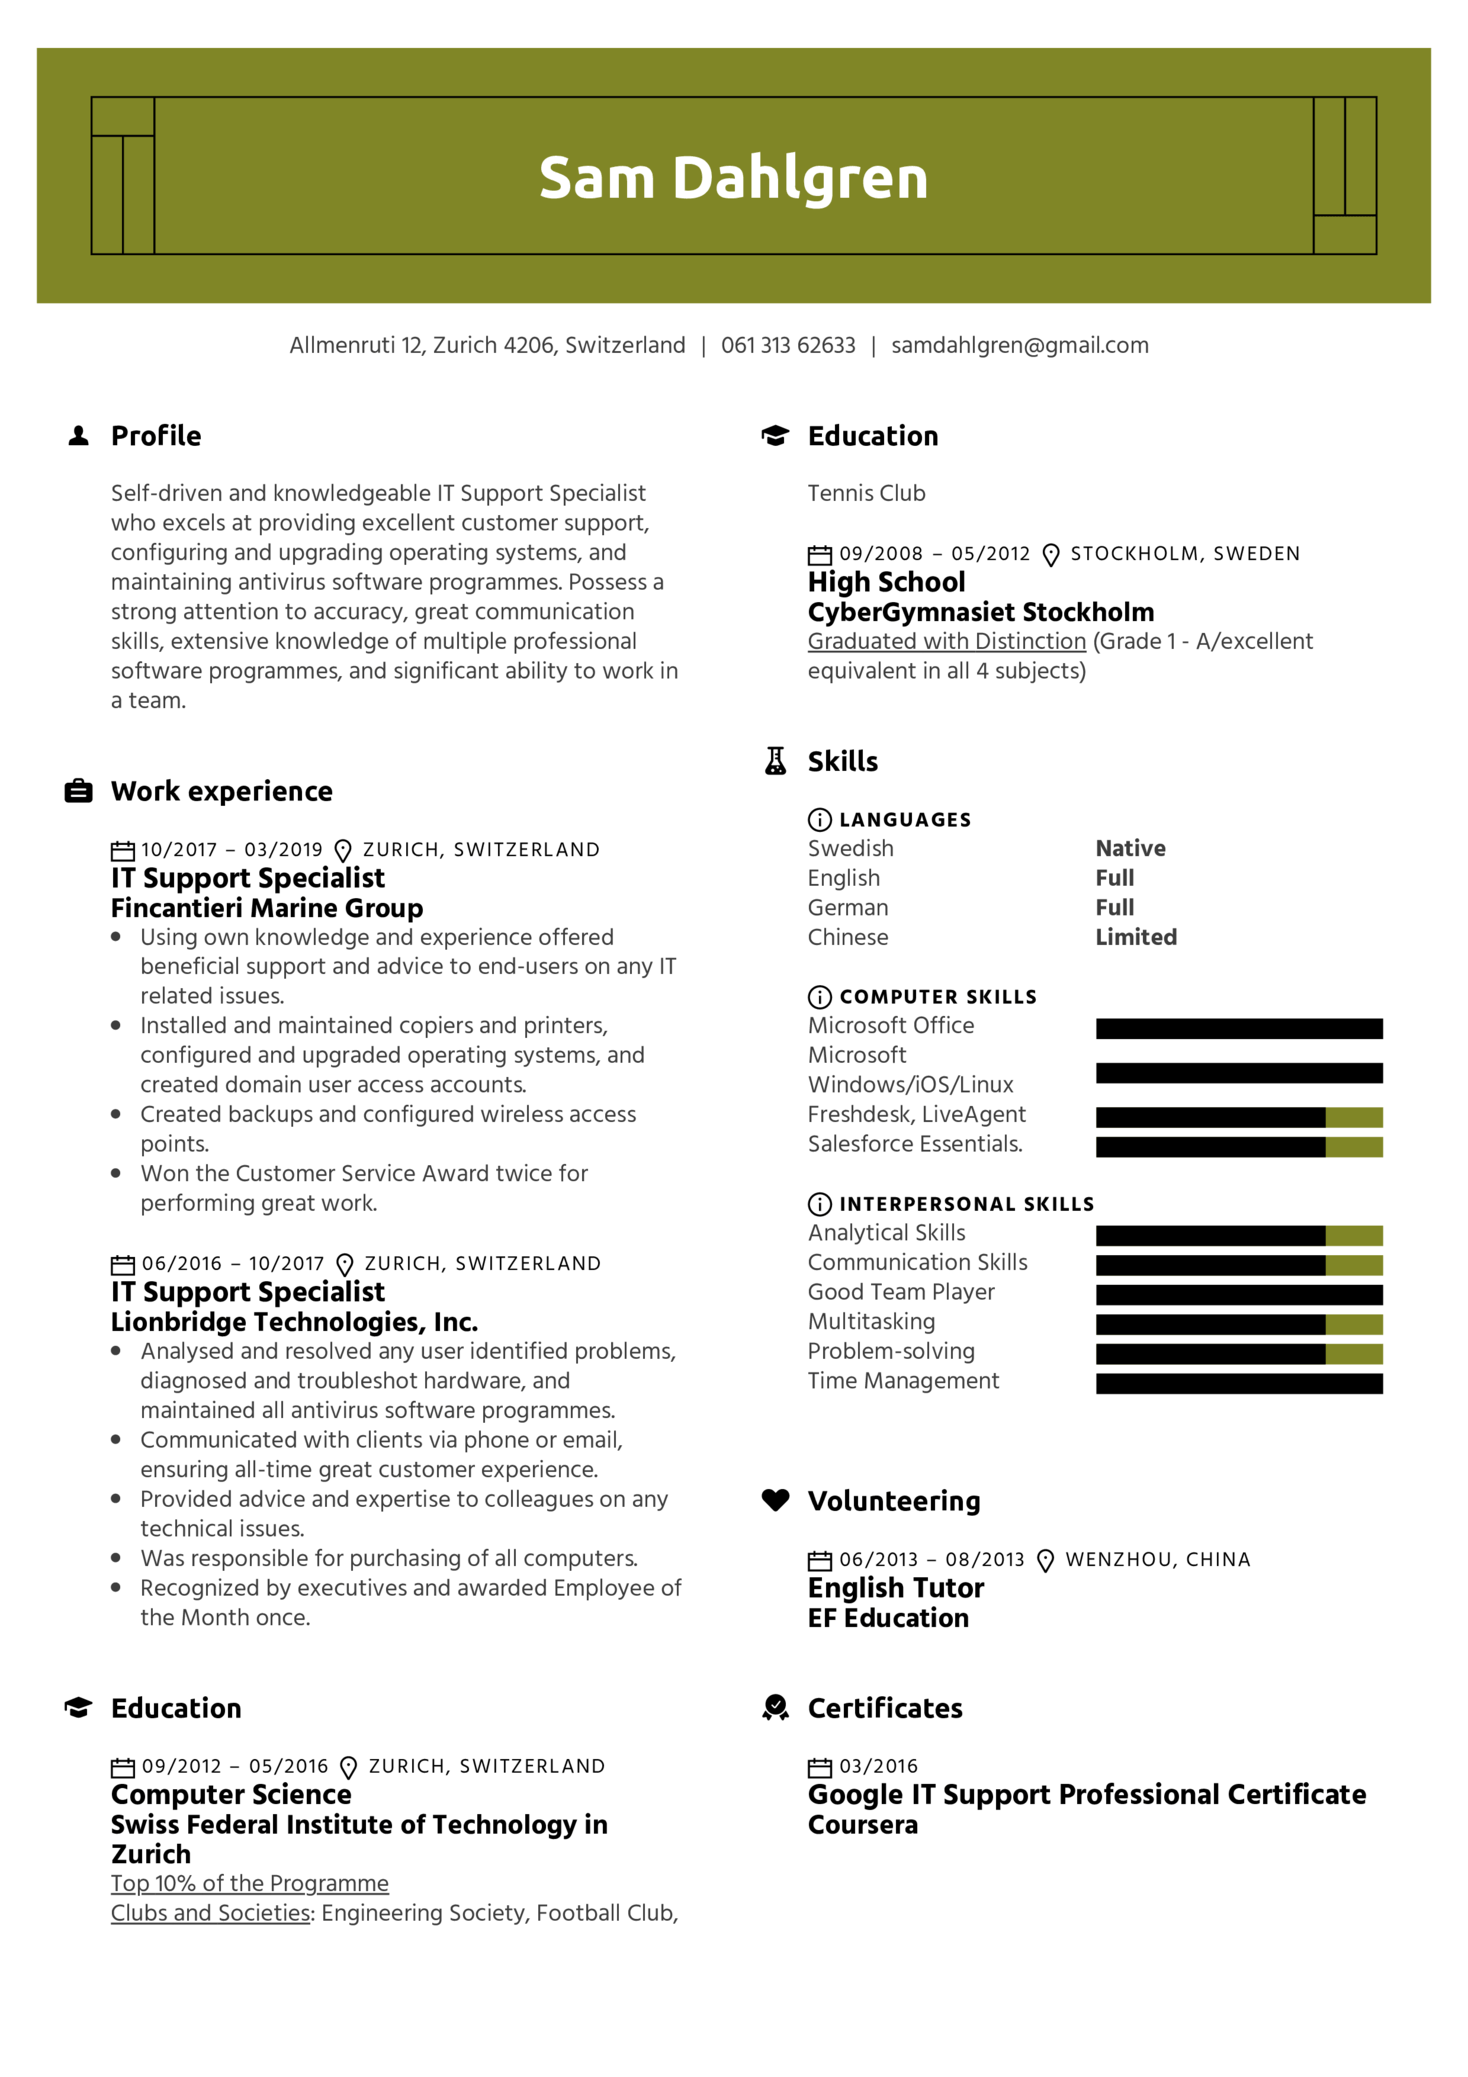 IT Support Specialist Resume Template (parte 1)